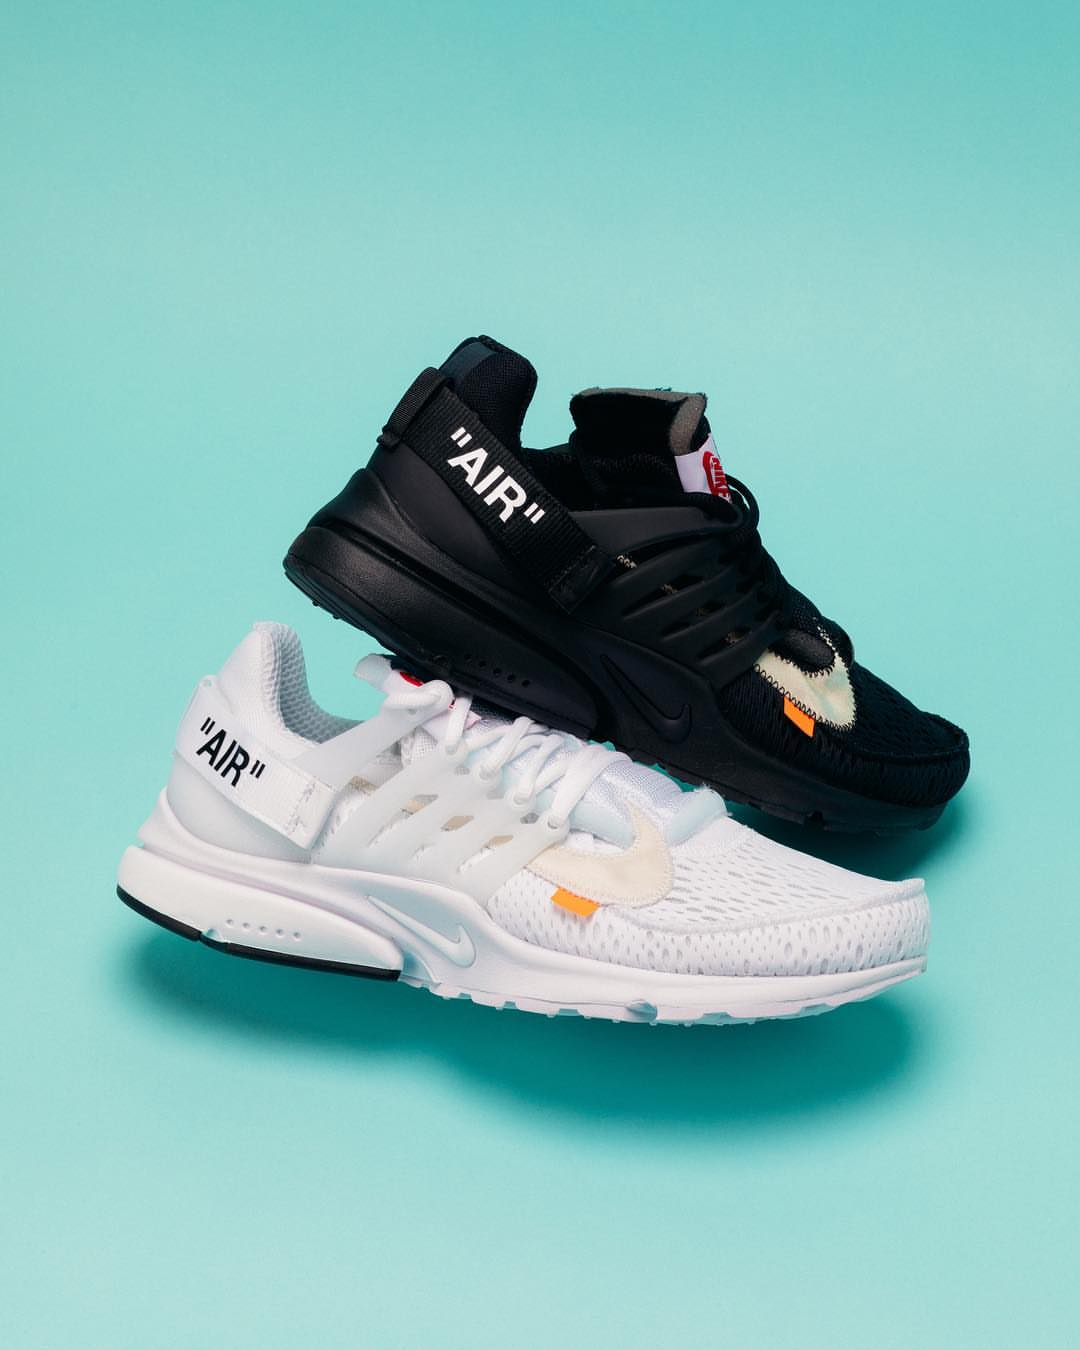 6eb566fbbbf41 The Off-White x Nike Air Presto  How Will It Sell - StockX News